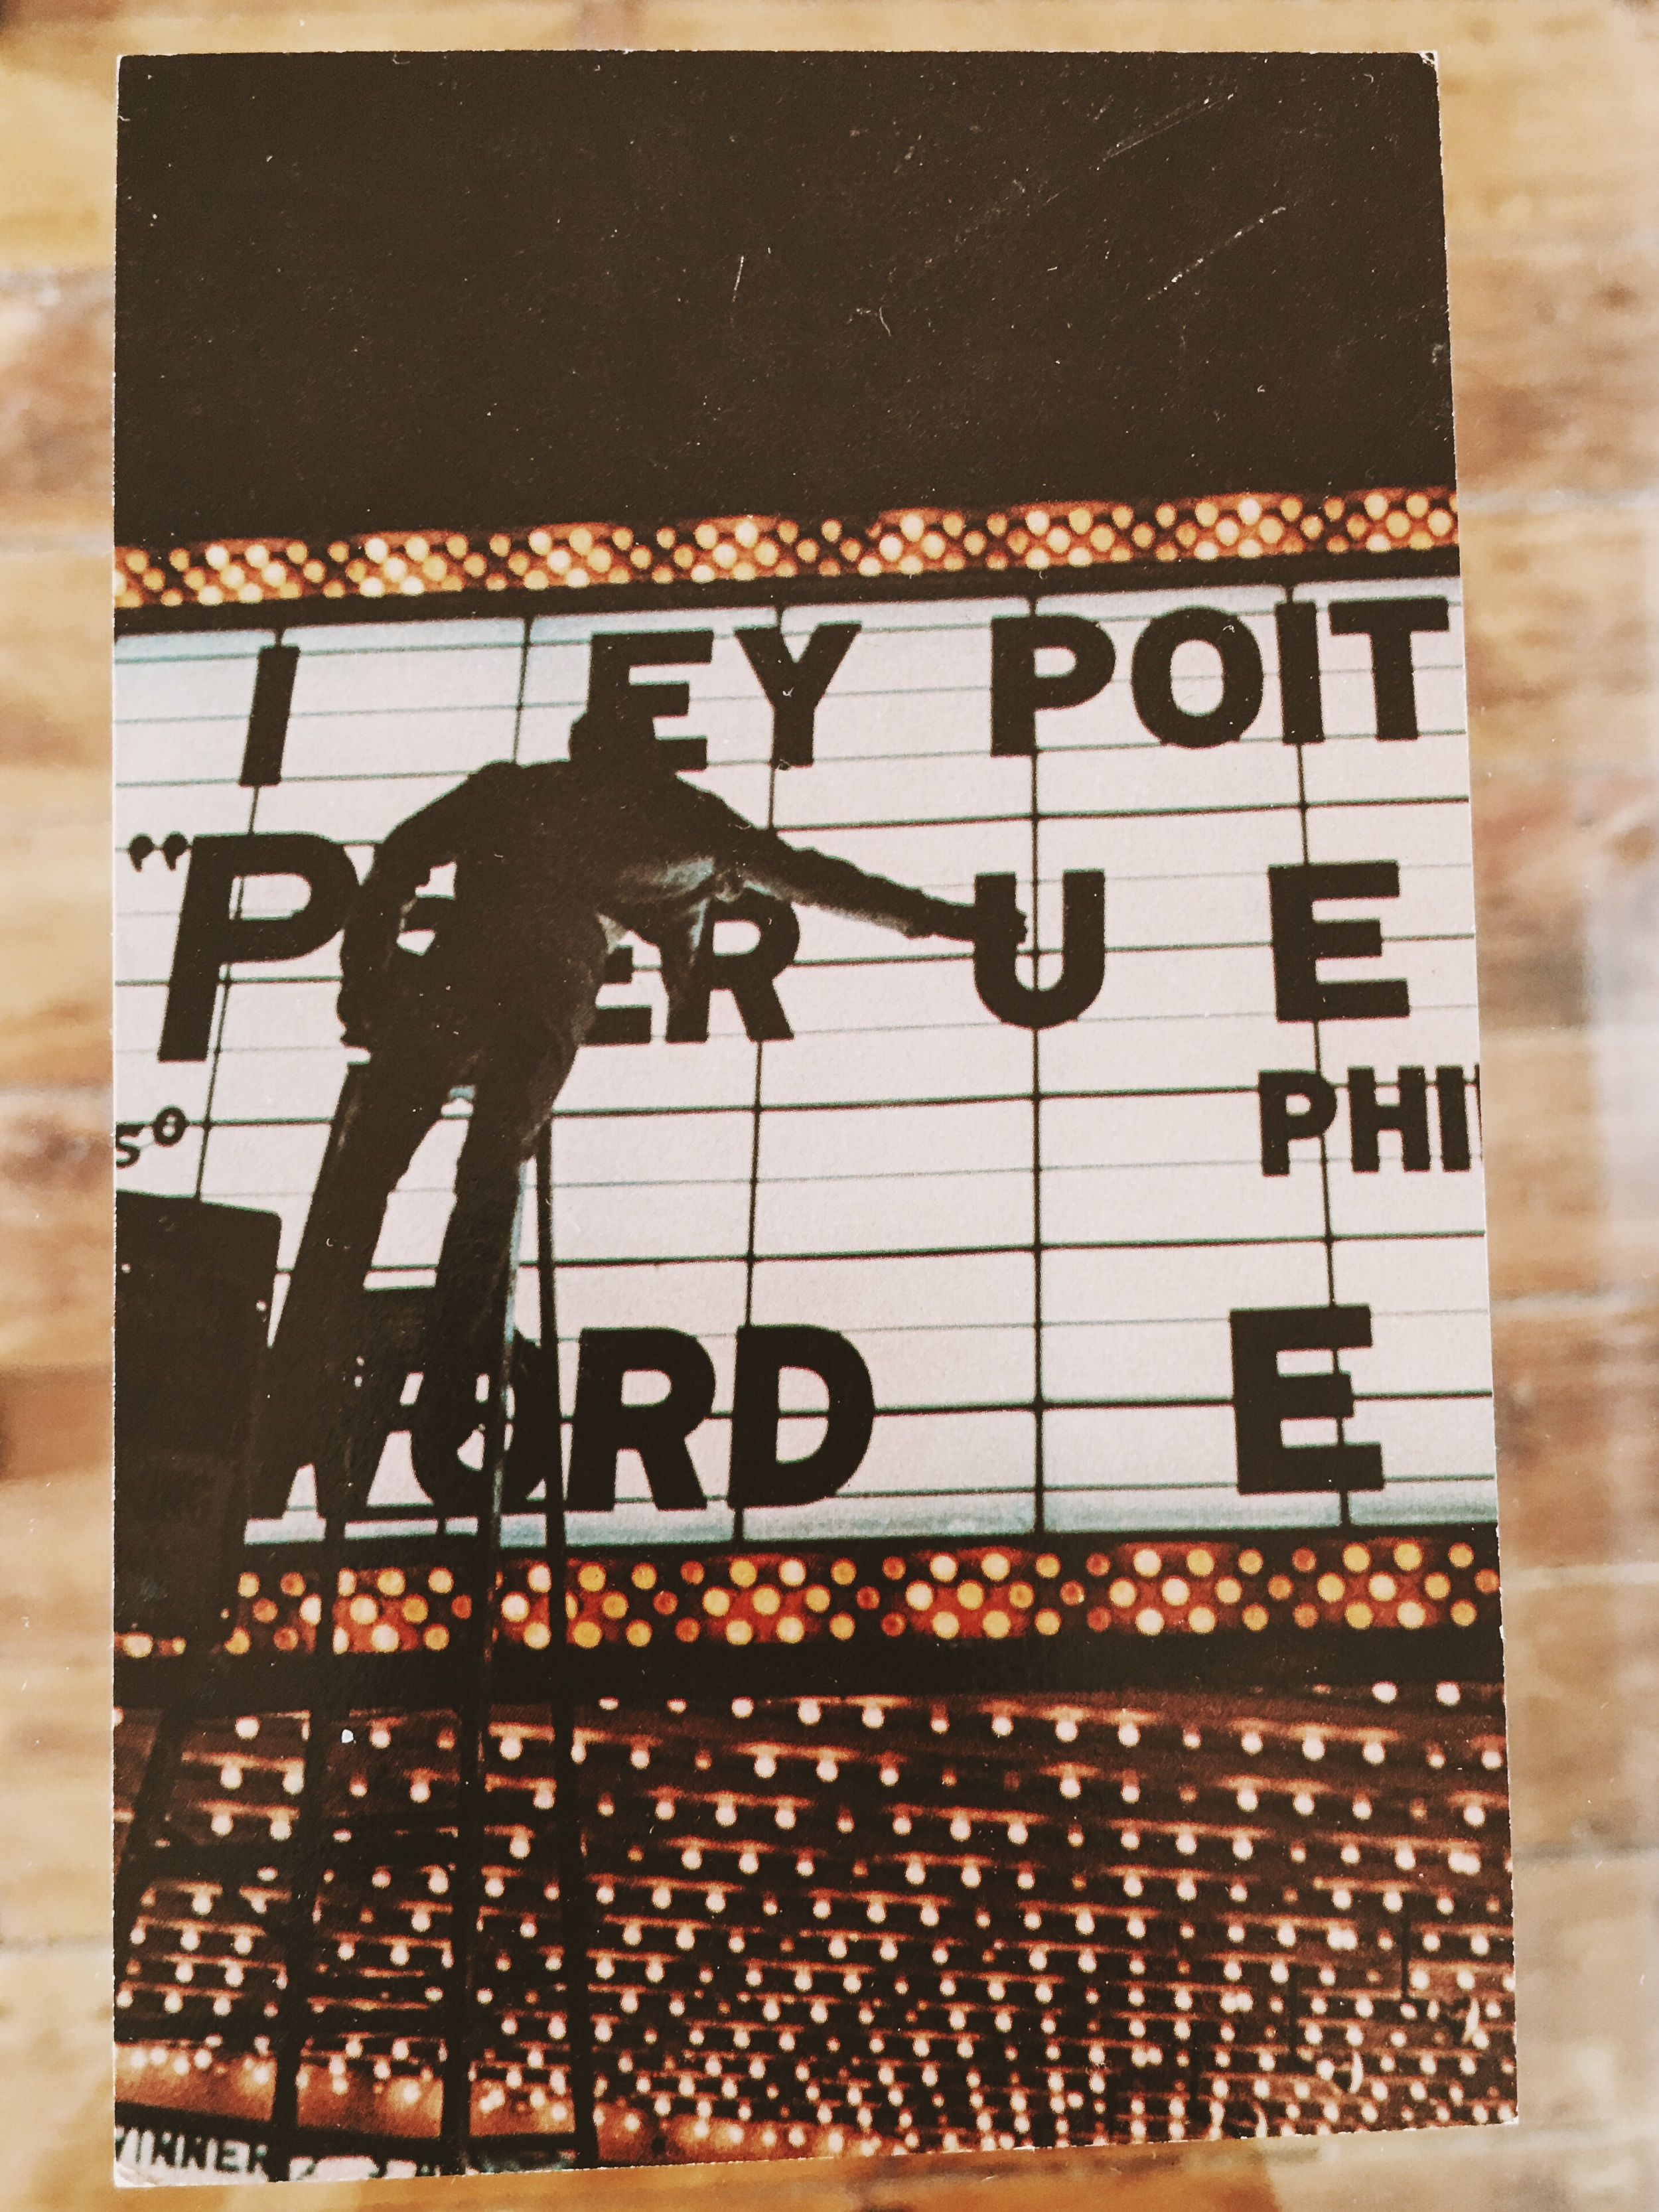 """""""PHOTONOTATIONS"""" a group show invite photograph credit: George Segal   with photographs by Arman, Mel Bochner, Sol LeWitt, Robert Mangold, Robert Smithson among others"""